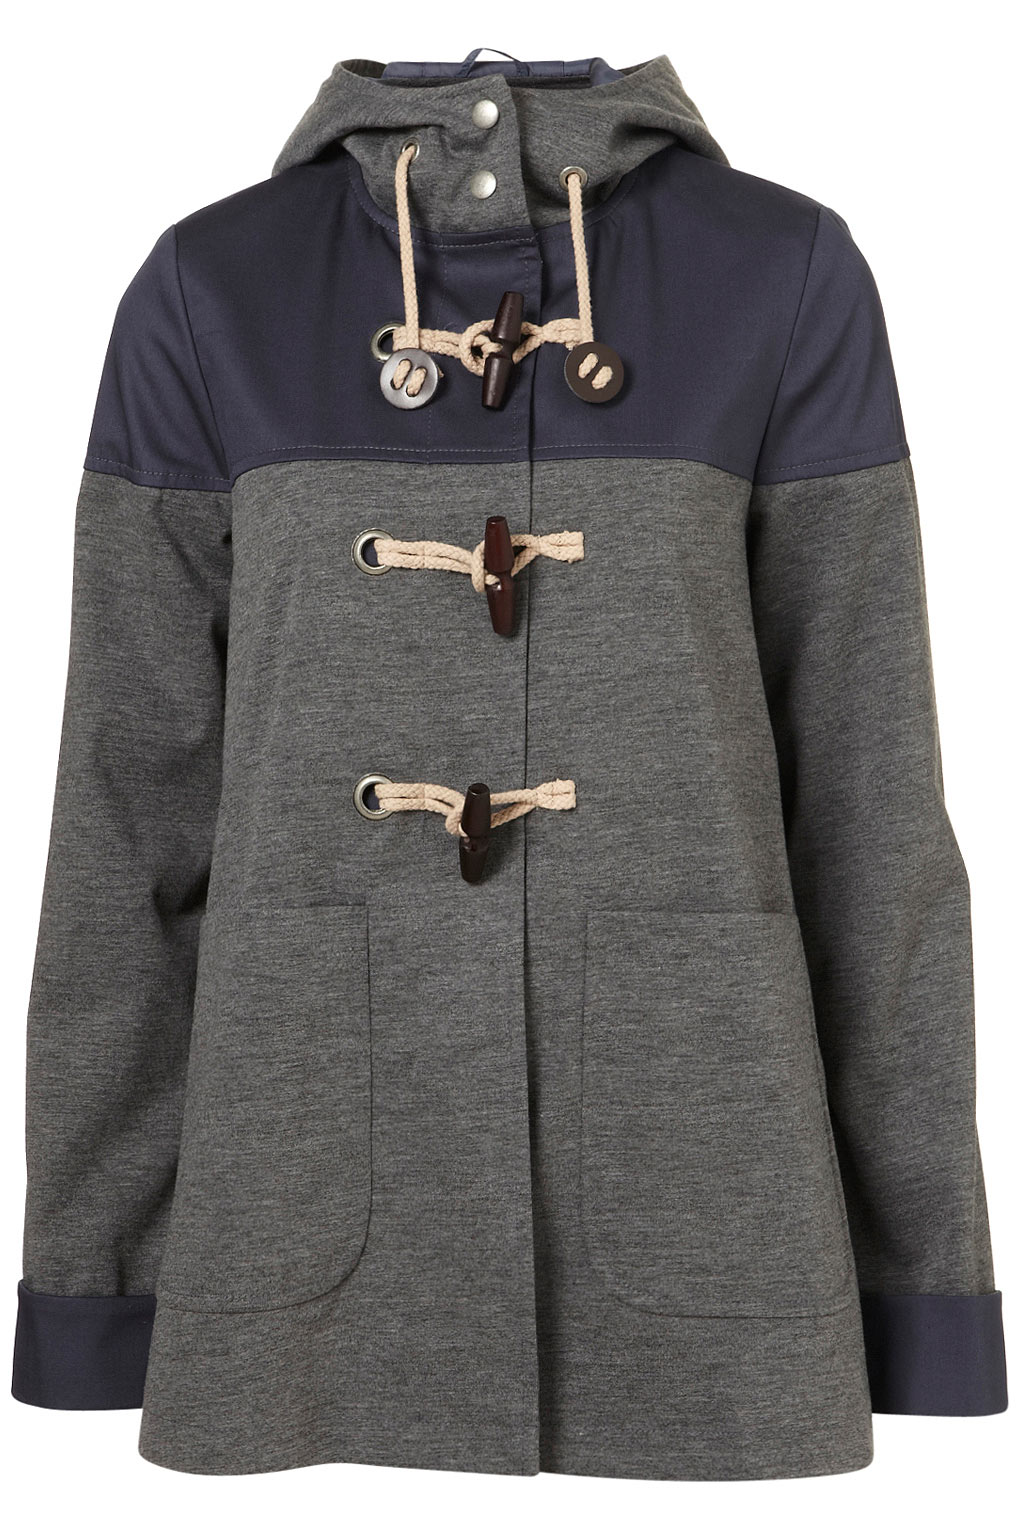 Topshop Cotton Hooded Contrast Duffle Coat in Gray | Lyst